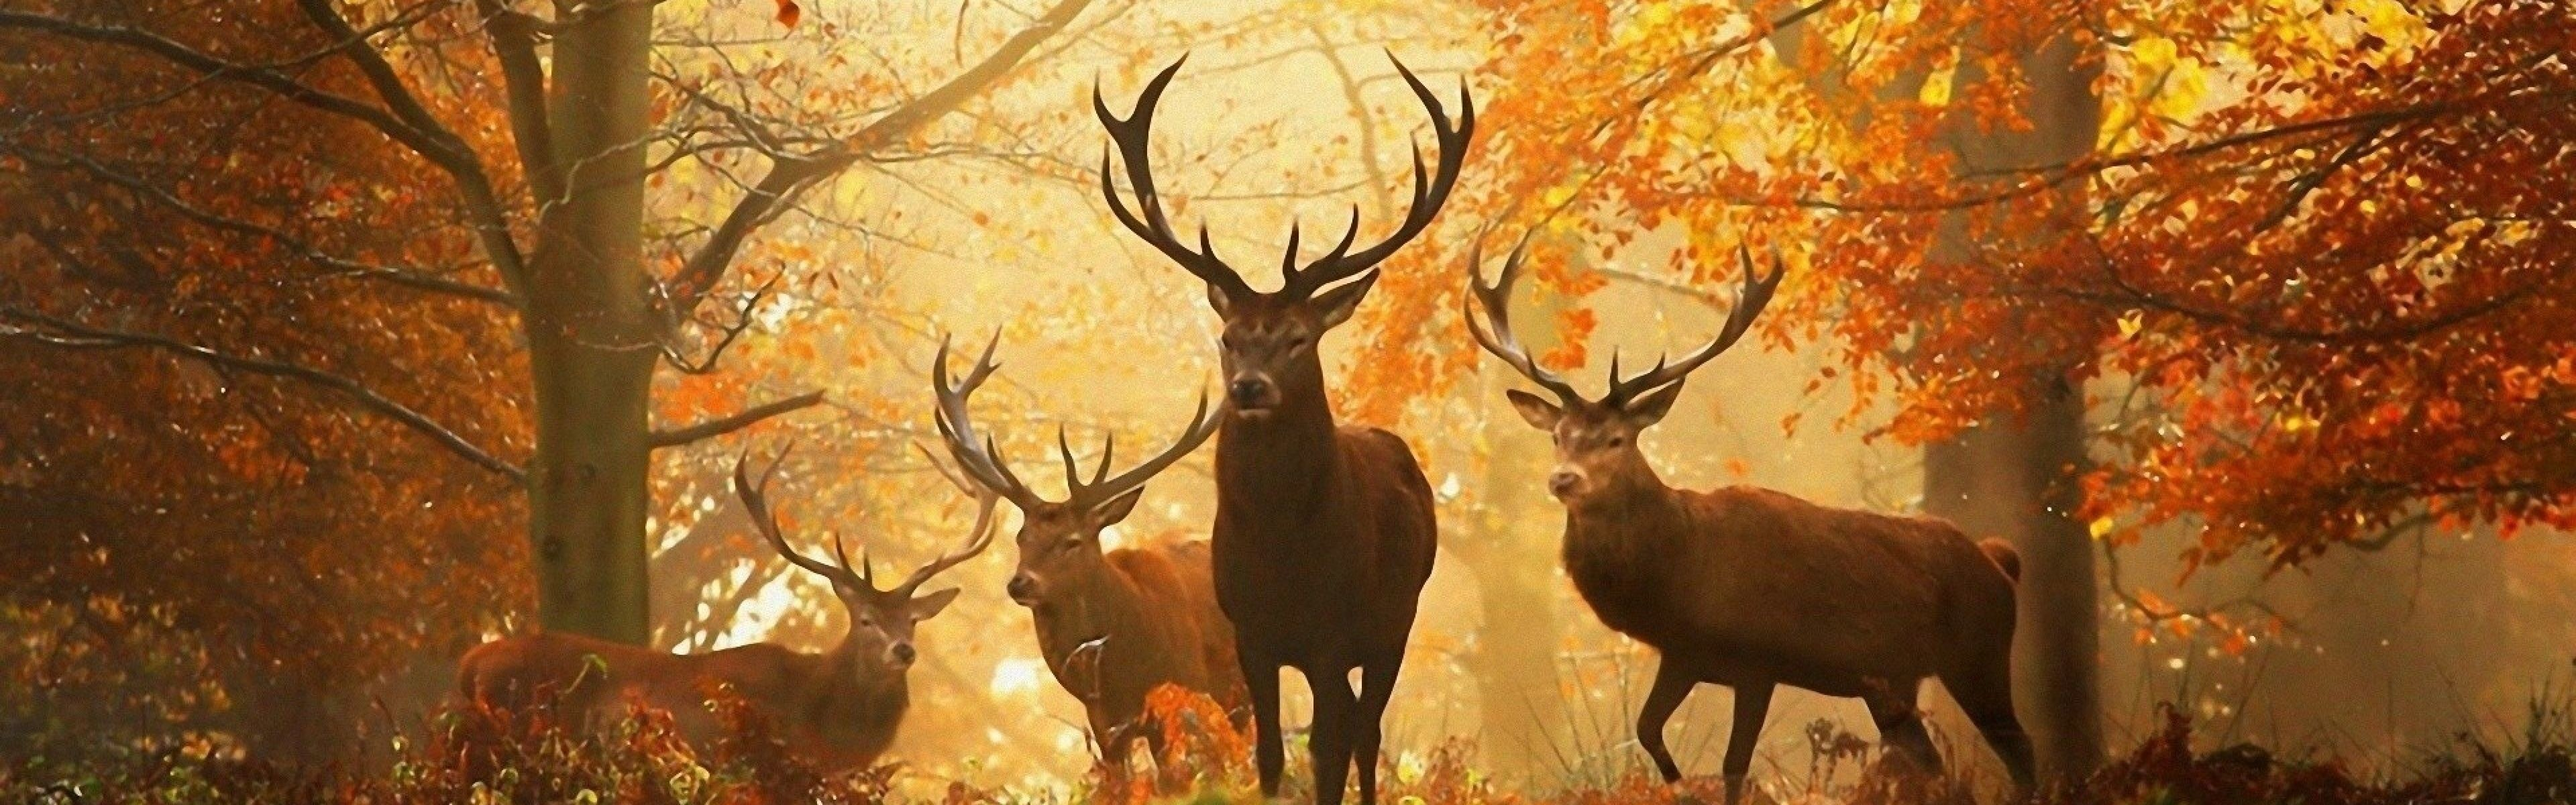 Res: 3840x1200, Deer Wallpapers Best Inspirational High Quality Deer